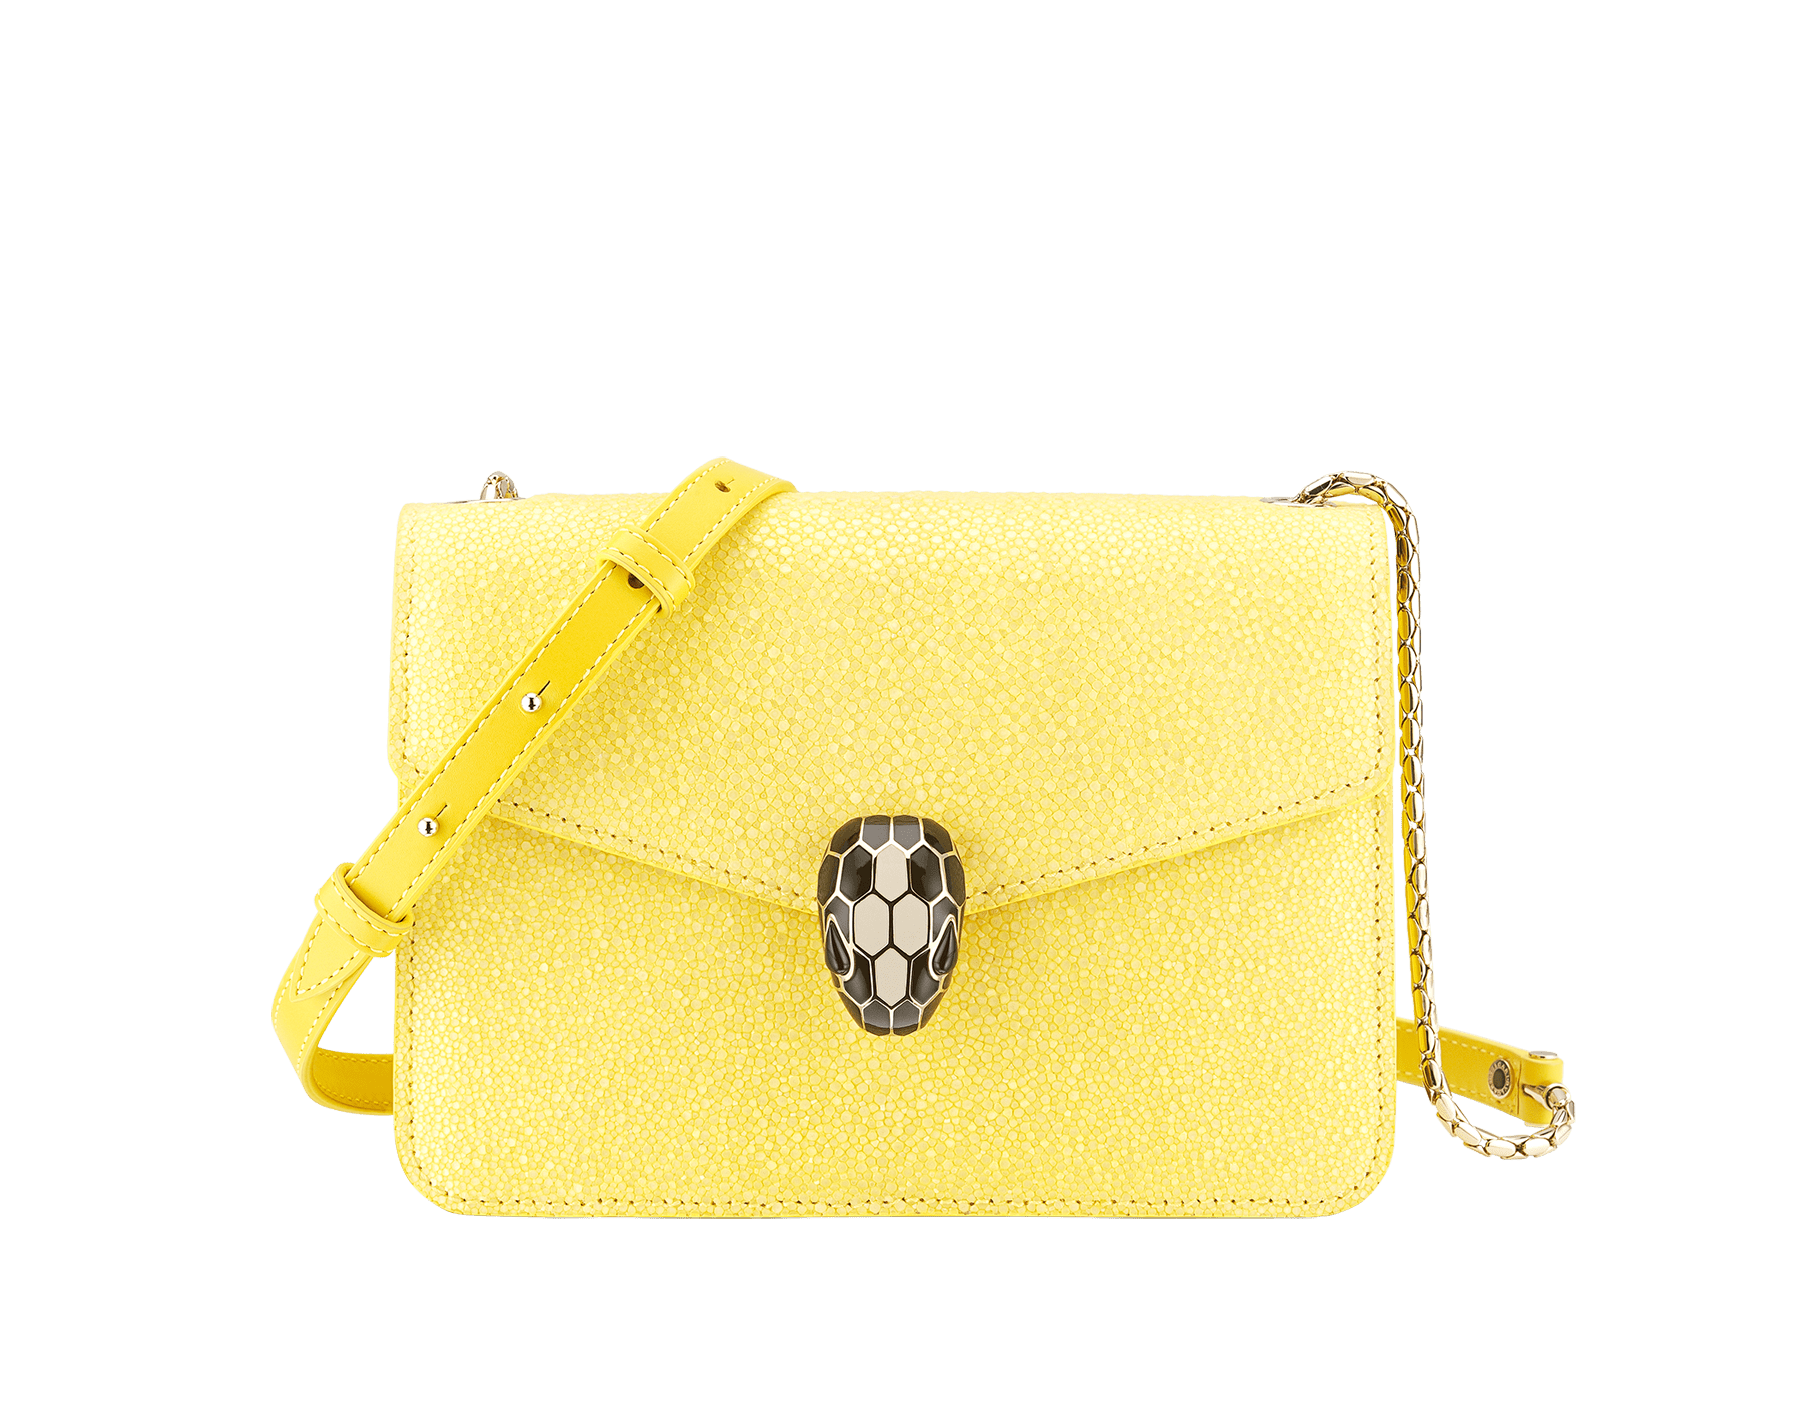 """Serpenti Forever"" crossbody bag in daisy topaz full galuchat skin body and daisy topaz calf leather sides. Iconic snakehead closure in light gold plated brass enriched with black and white enamel and black onyx eyes. 290242 image 1"